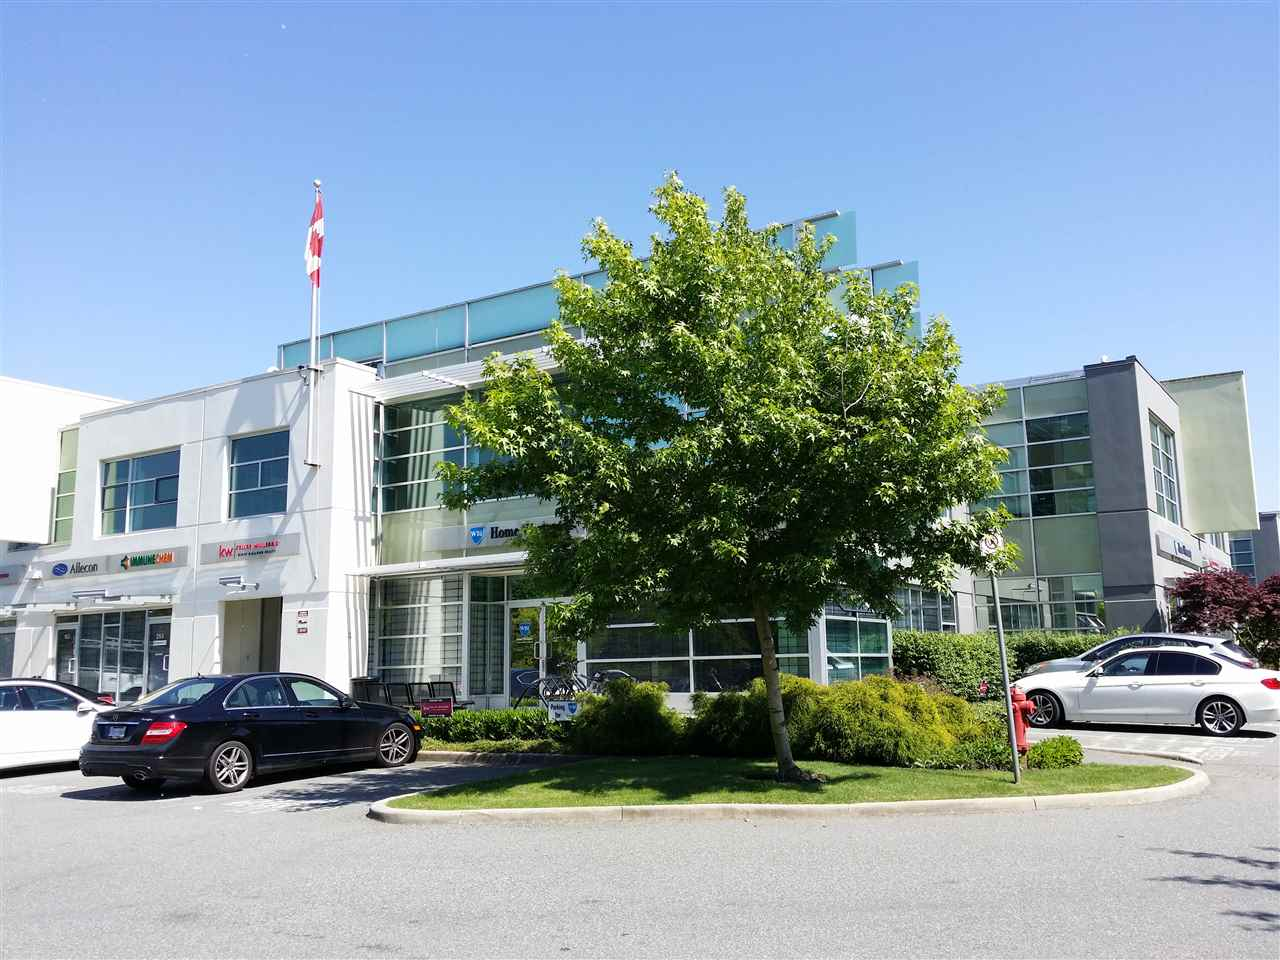 1,626 Square feet high quality second floor office located in Riverway Business Park on Marine Way and Byrne Road, a high volume intersection directly across from marine Way Market and Big Bend Shopping. This location offers excellent access to all Great Vancouver key market areas. Unit features HVAC throughout, open work area, two (2) private offices, boardroom, storage room, kitchenette/lunchroom, skylight, drop down t-bar ceiling and one (1) washroom. please contact listing agents for more details and to book a showing.